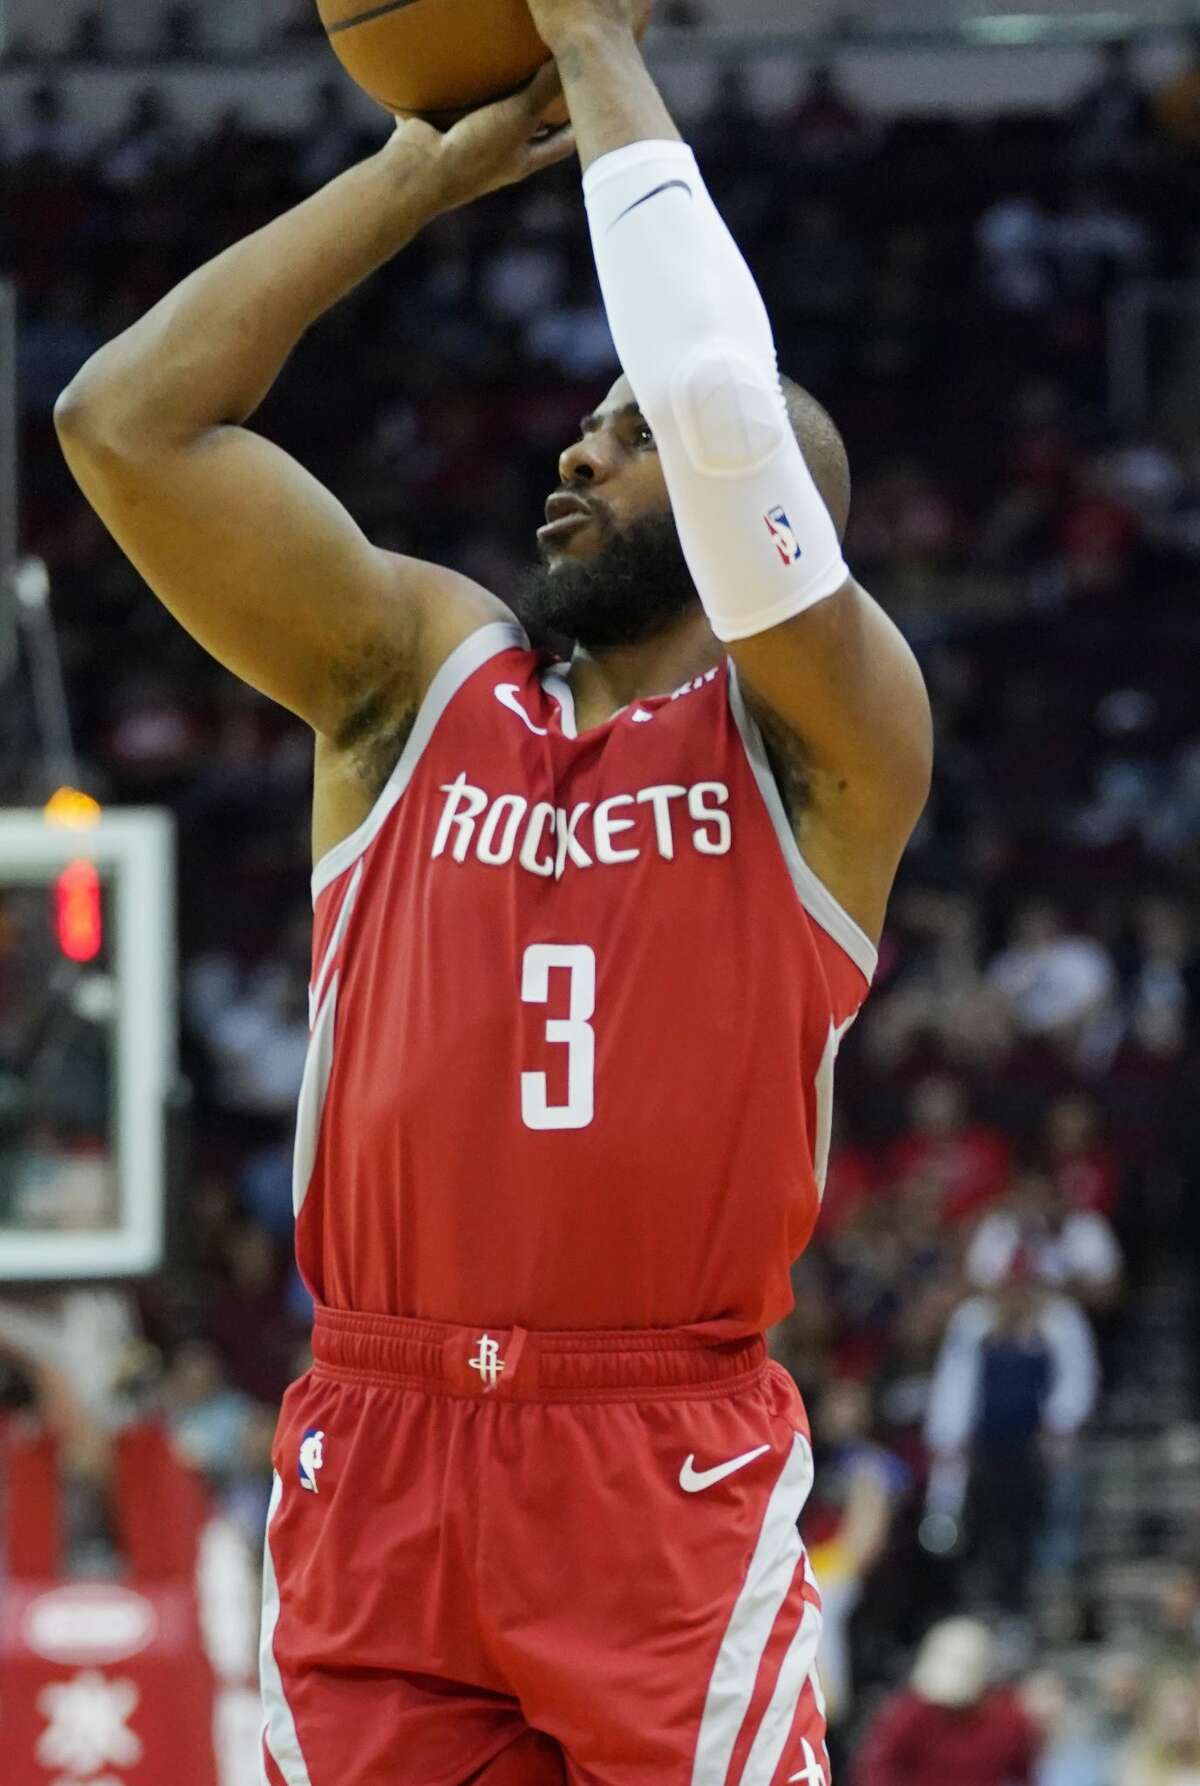 Houston Rockets guard Chris Paul (3) puts up a three-point shot against Phoenix Suns at the Toyota Center on Sunday, April 7, 2019. Paul had six points in the Rockets 149-113 win over Phoenix Suns.